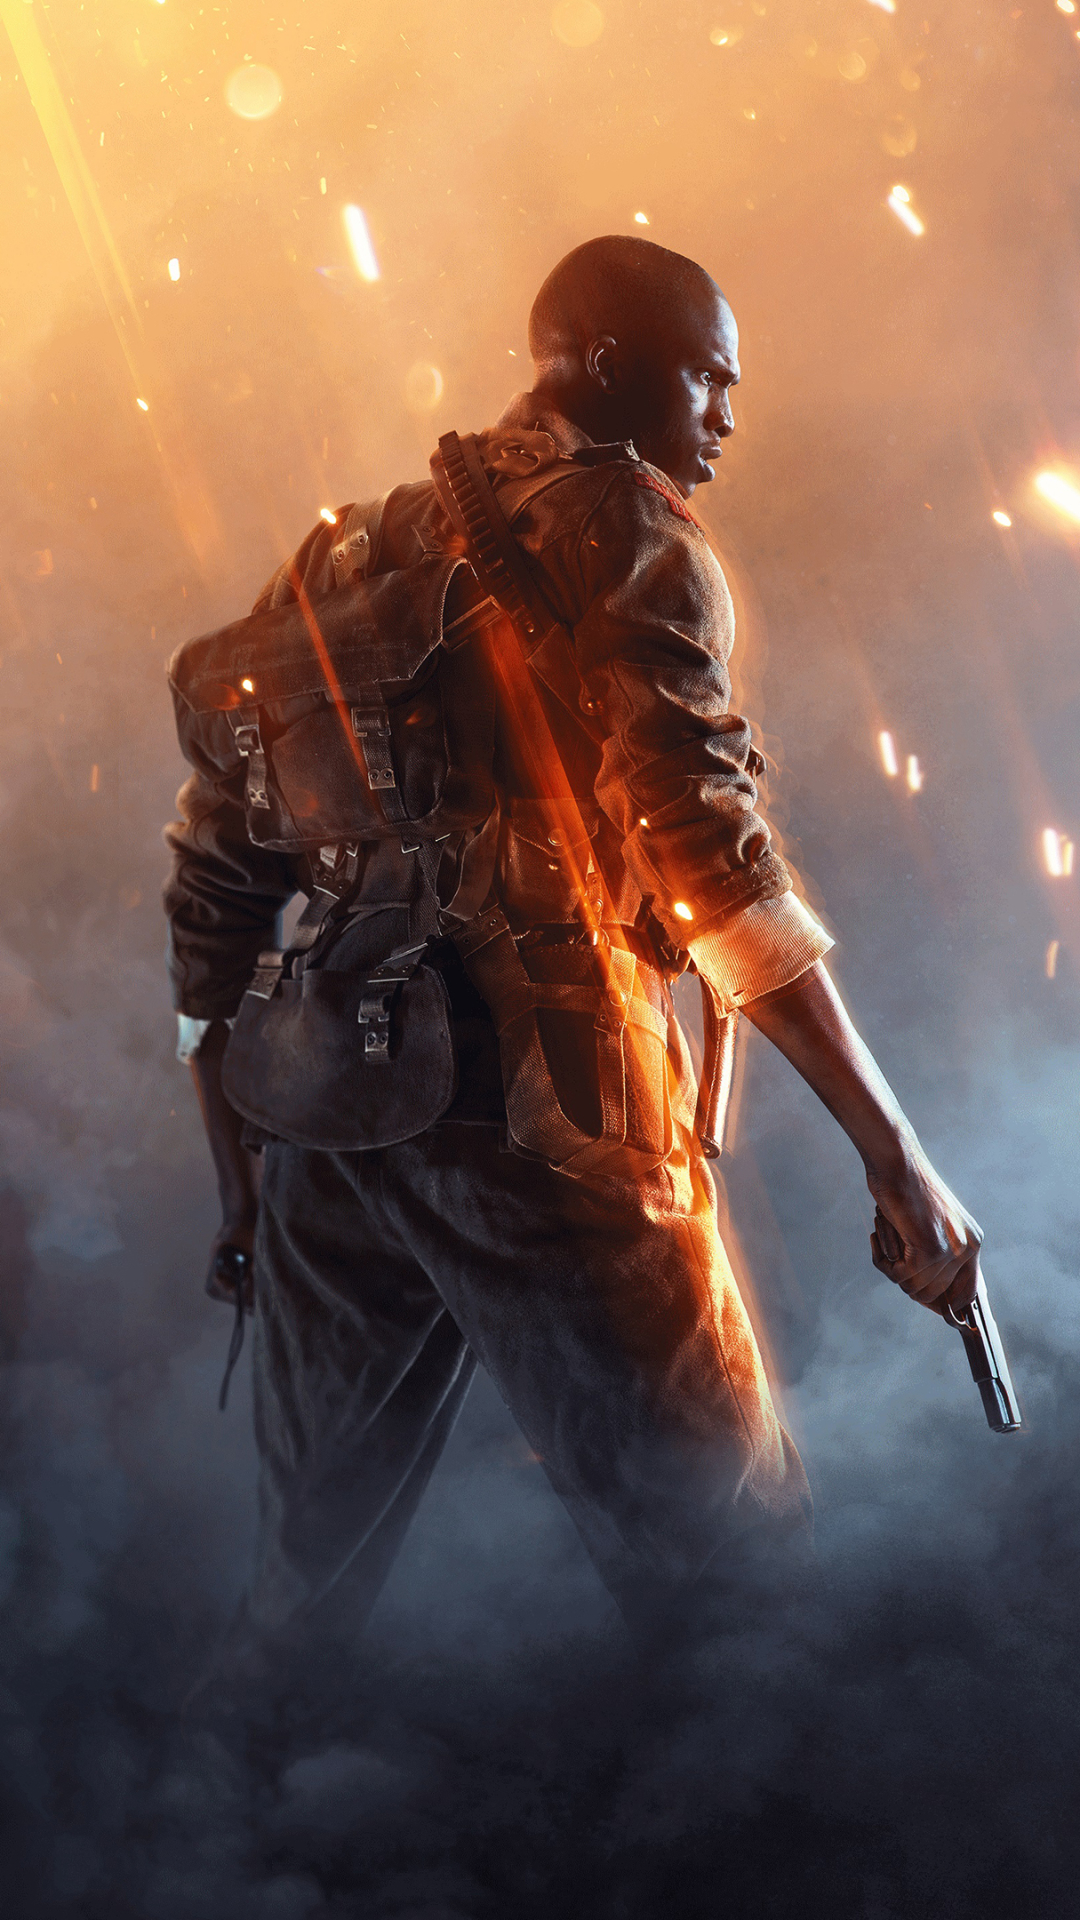 Battlefield 1 iPhone 6 Wallpaper | ID: 58753